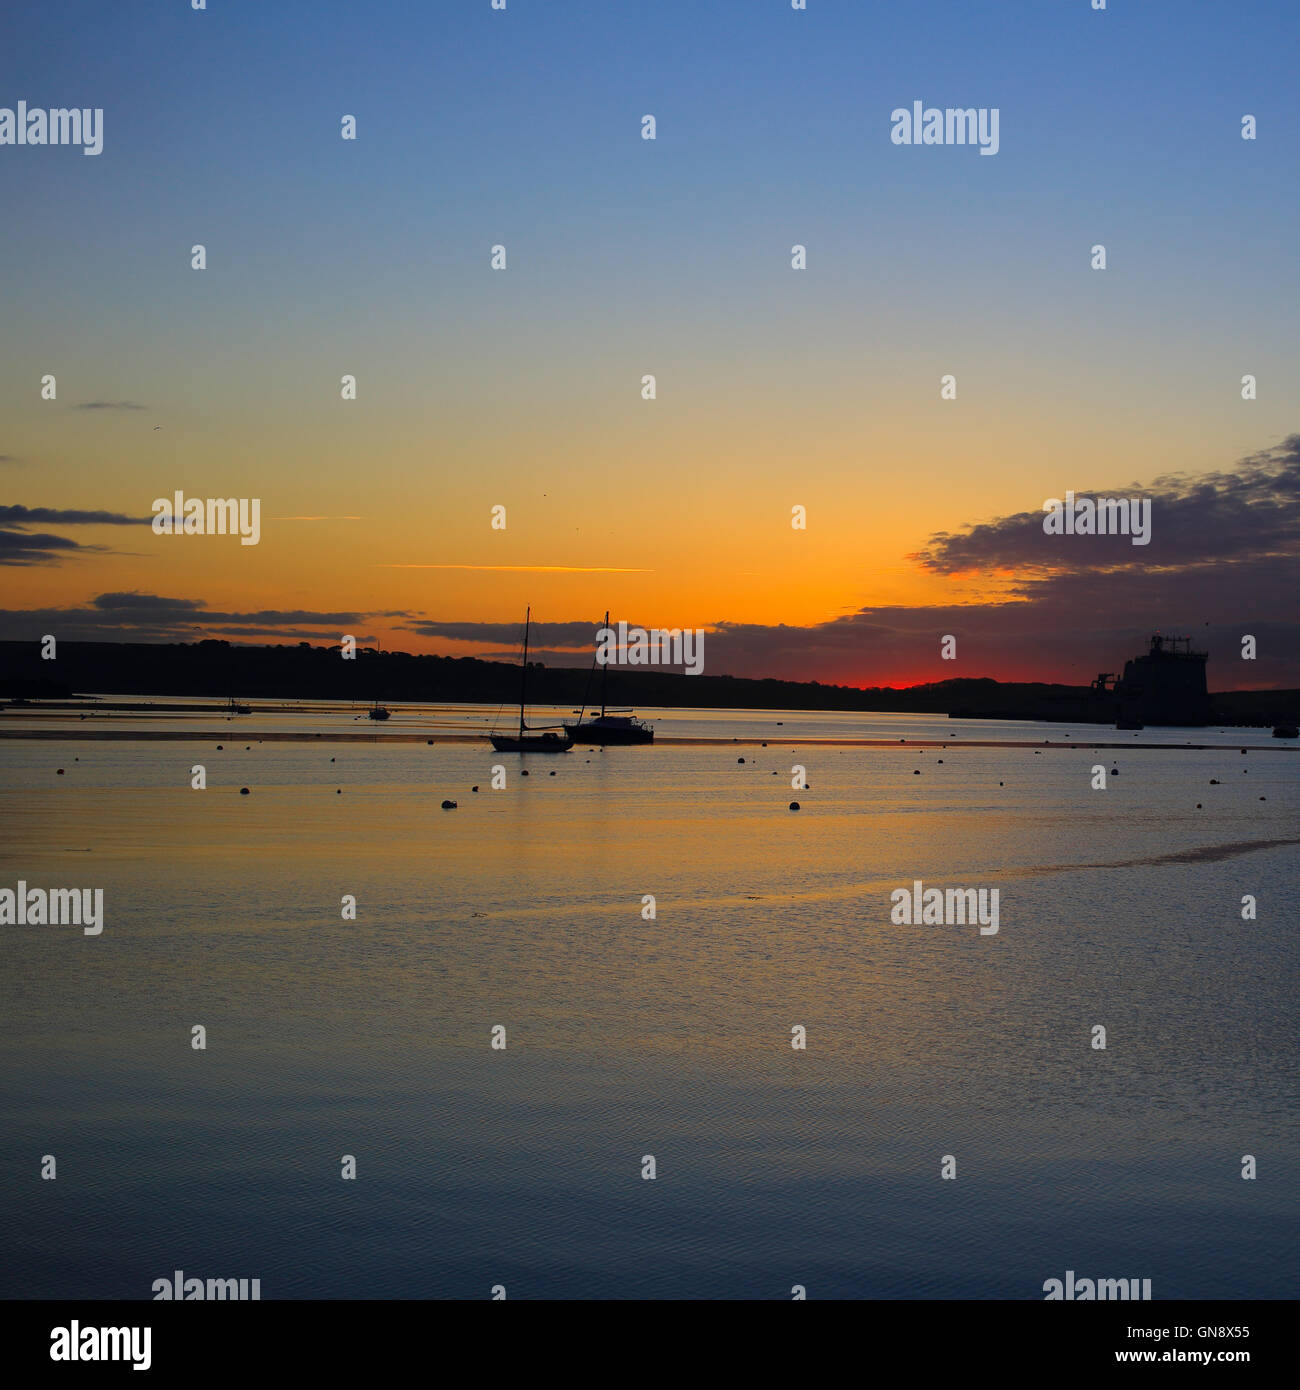 Sunrise over the Carrick Roads at high tide, Falmouth, Cornwall, England, UK. - Stock Image